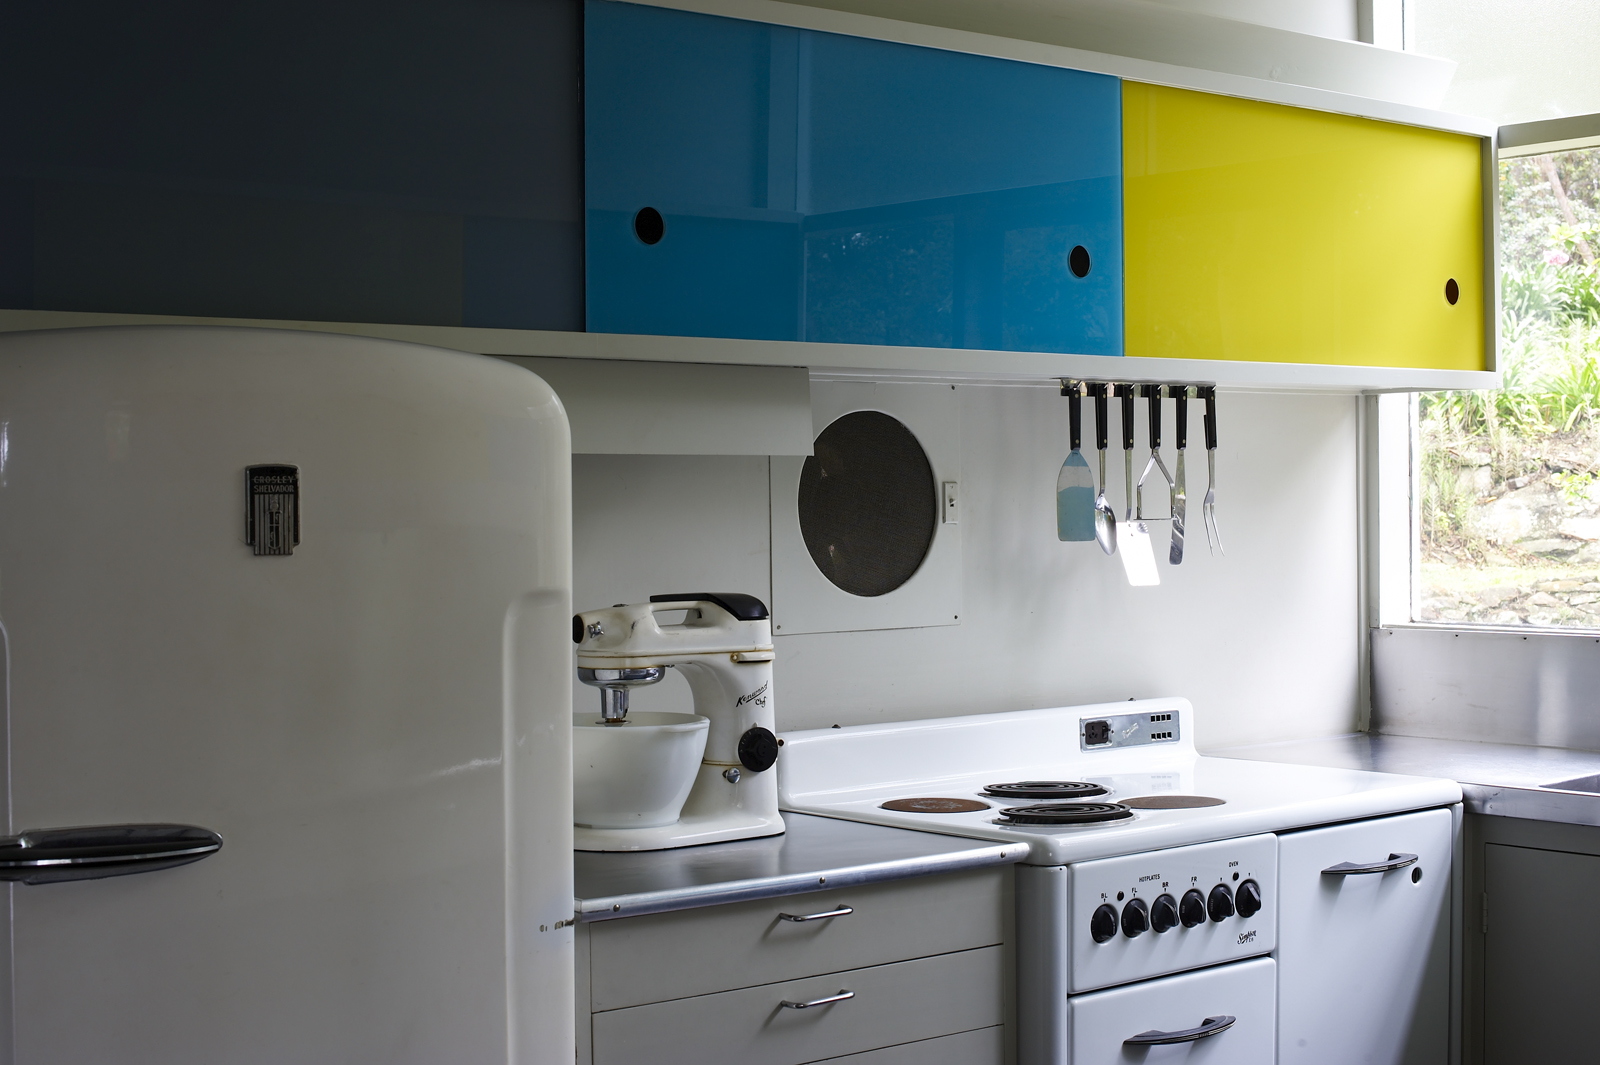 View of the kitchen showing the refrigerator, bench top and kitchen cupboards done in bold primary colours